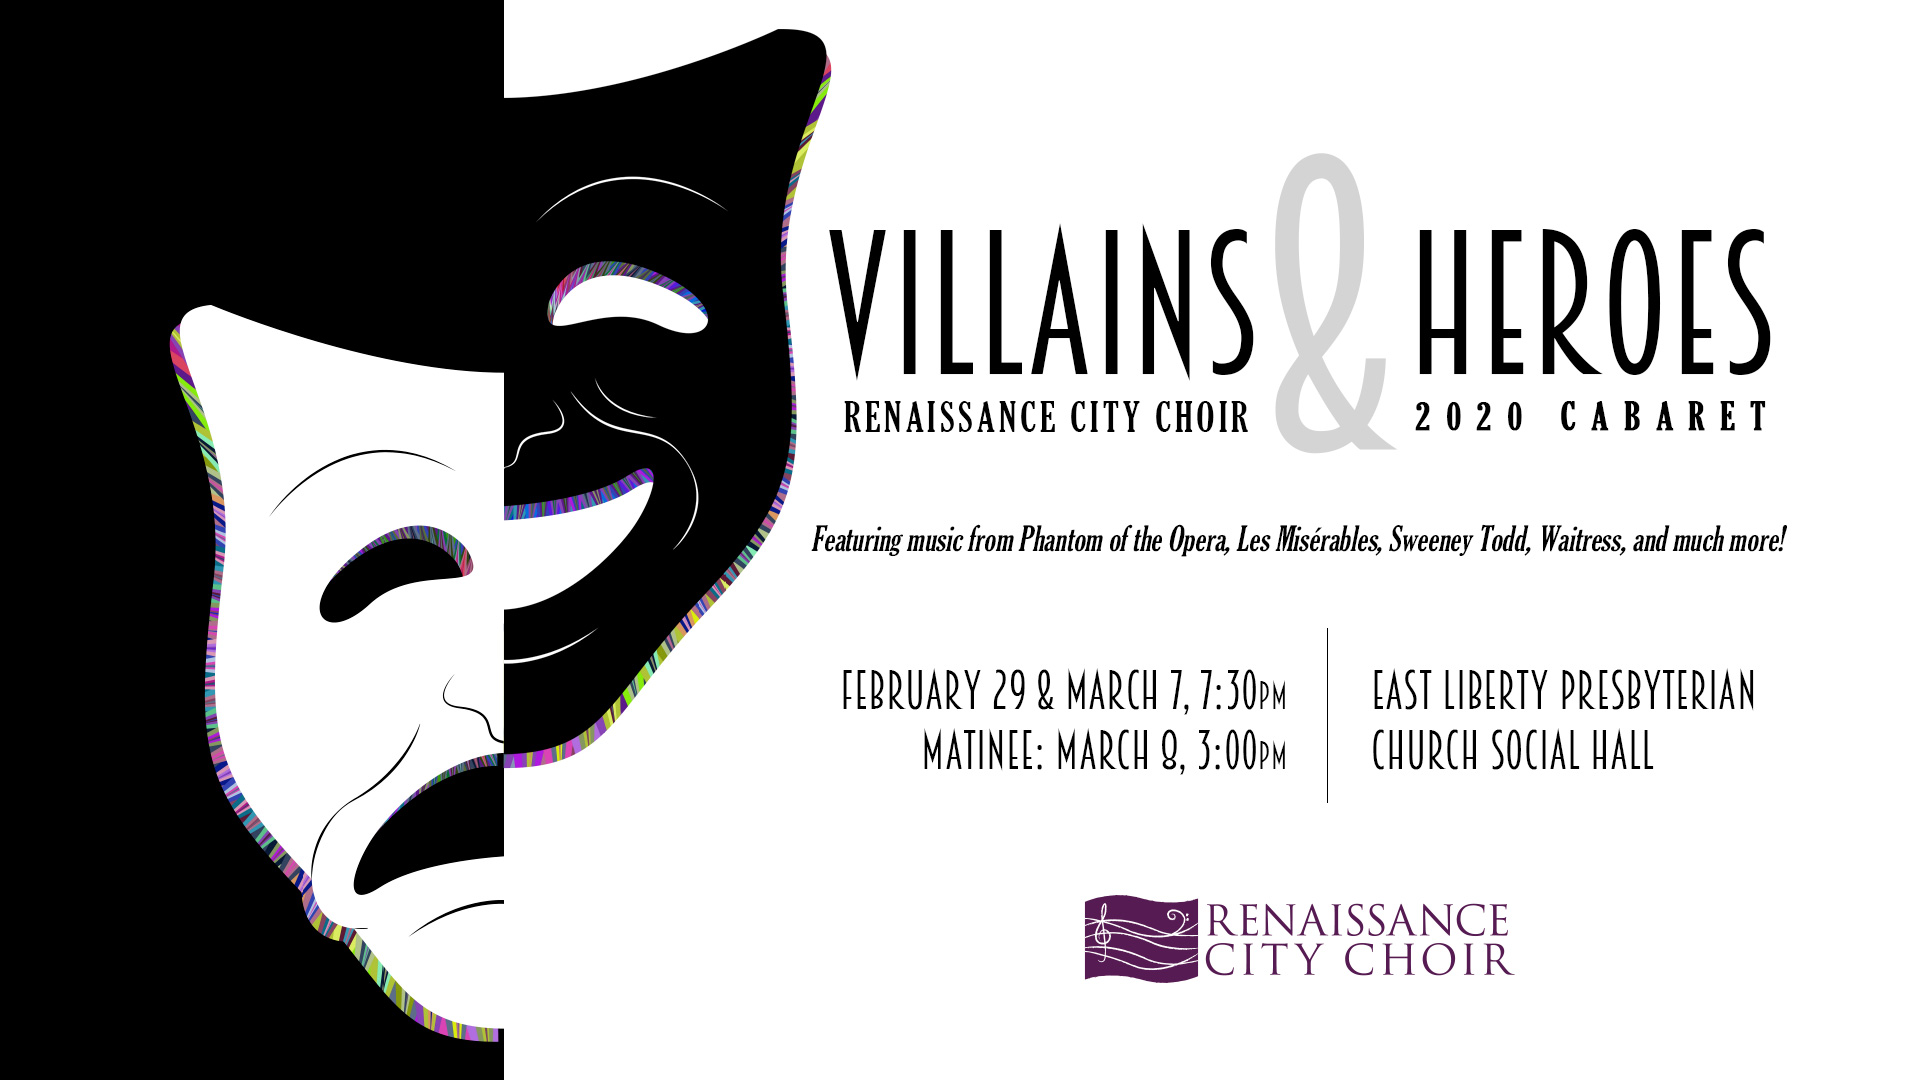 Renaissance City Choir 2020 Cabaret: Villains and Heroes